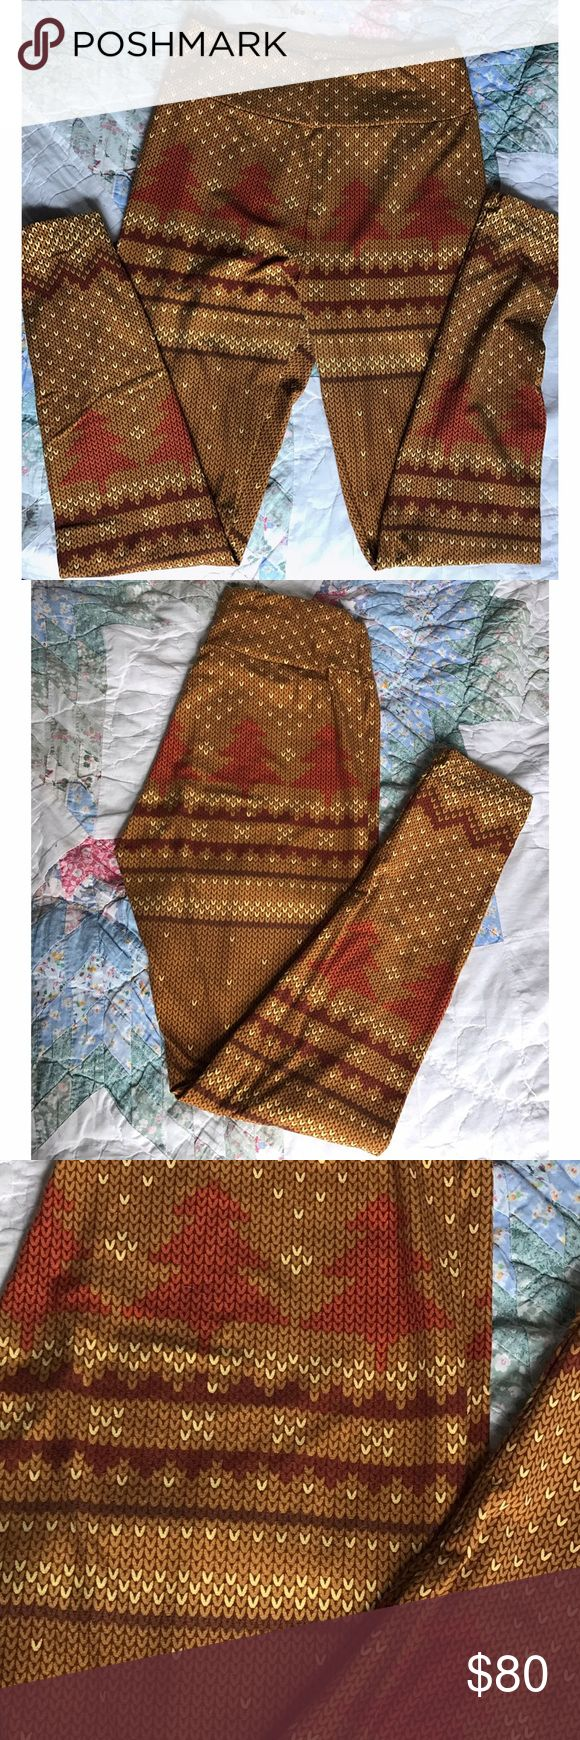 """RARE UNICORN LLR Christmas Tree Holiday Leggings! Super rare """"knit"""" Christmas Tree print leggings in browns and golds. Only worn twice. Get them while you can!  LuLaRoe Pants Leggings"""